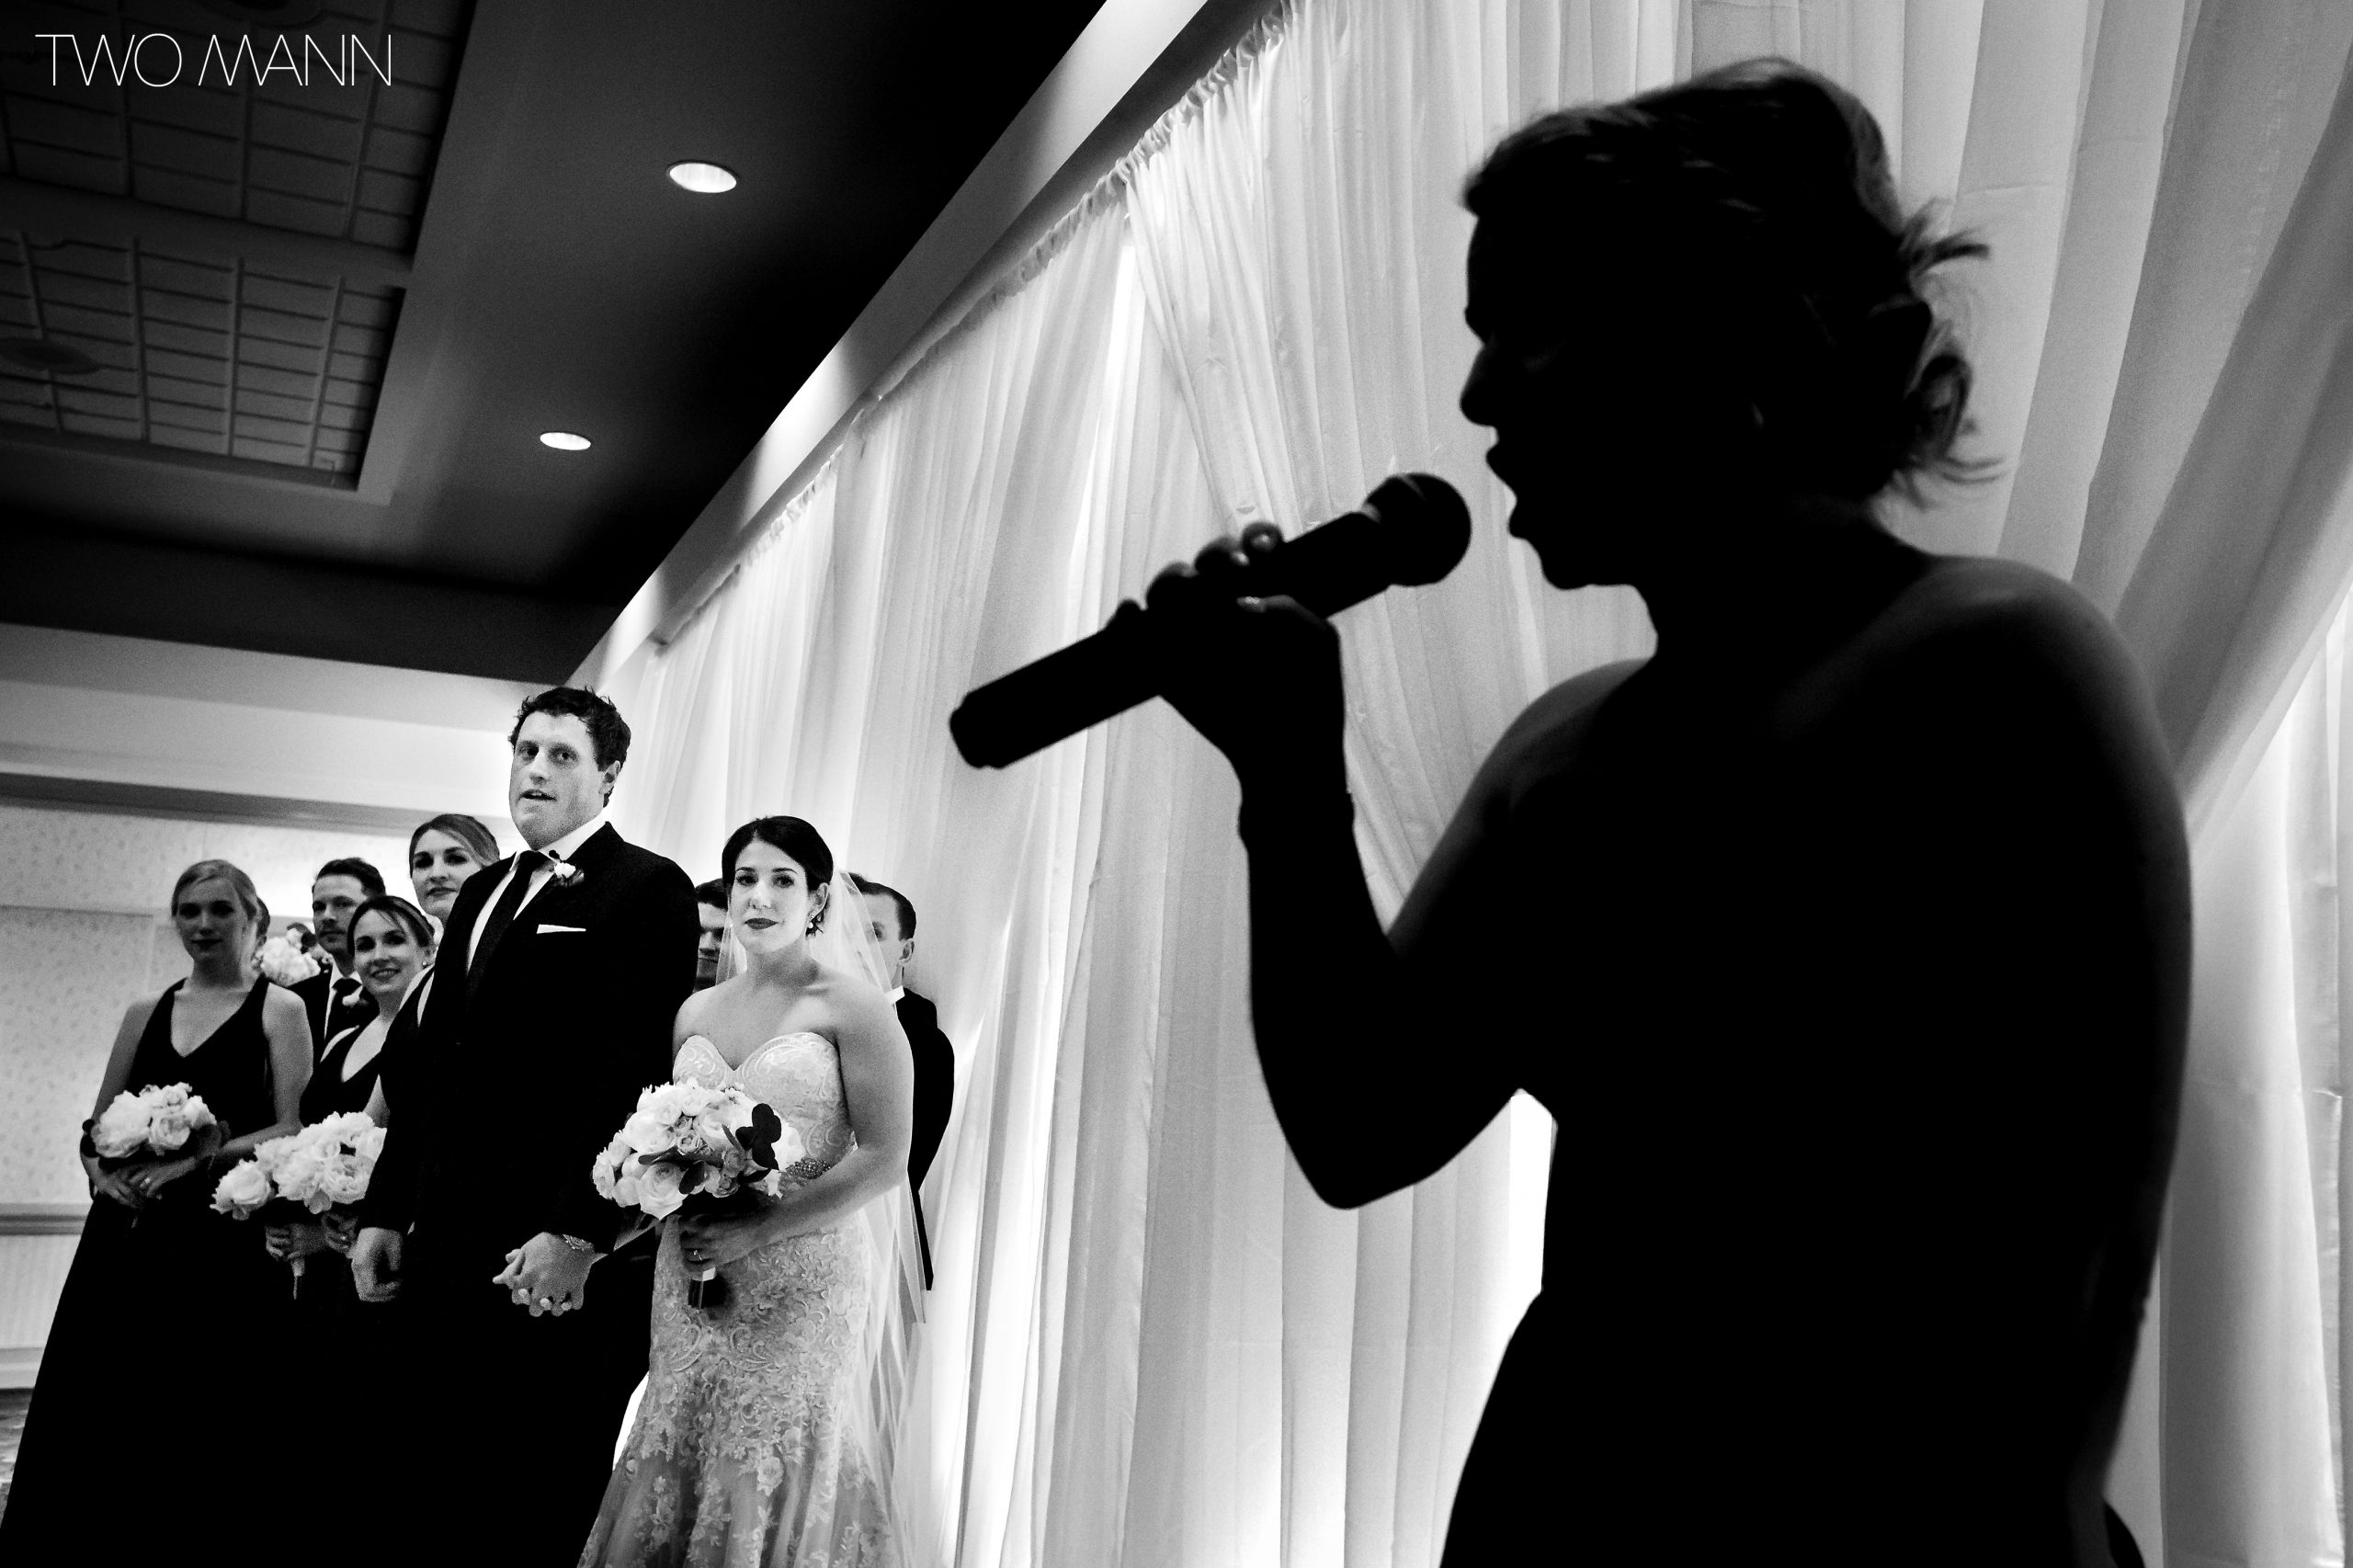 Allyson Is Watching banff wedding photography archives - two mann studios